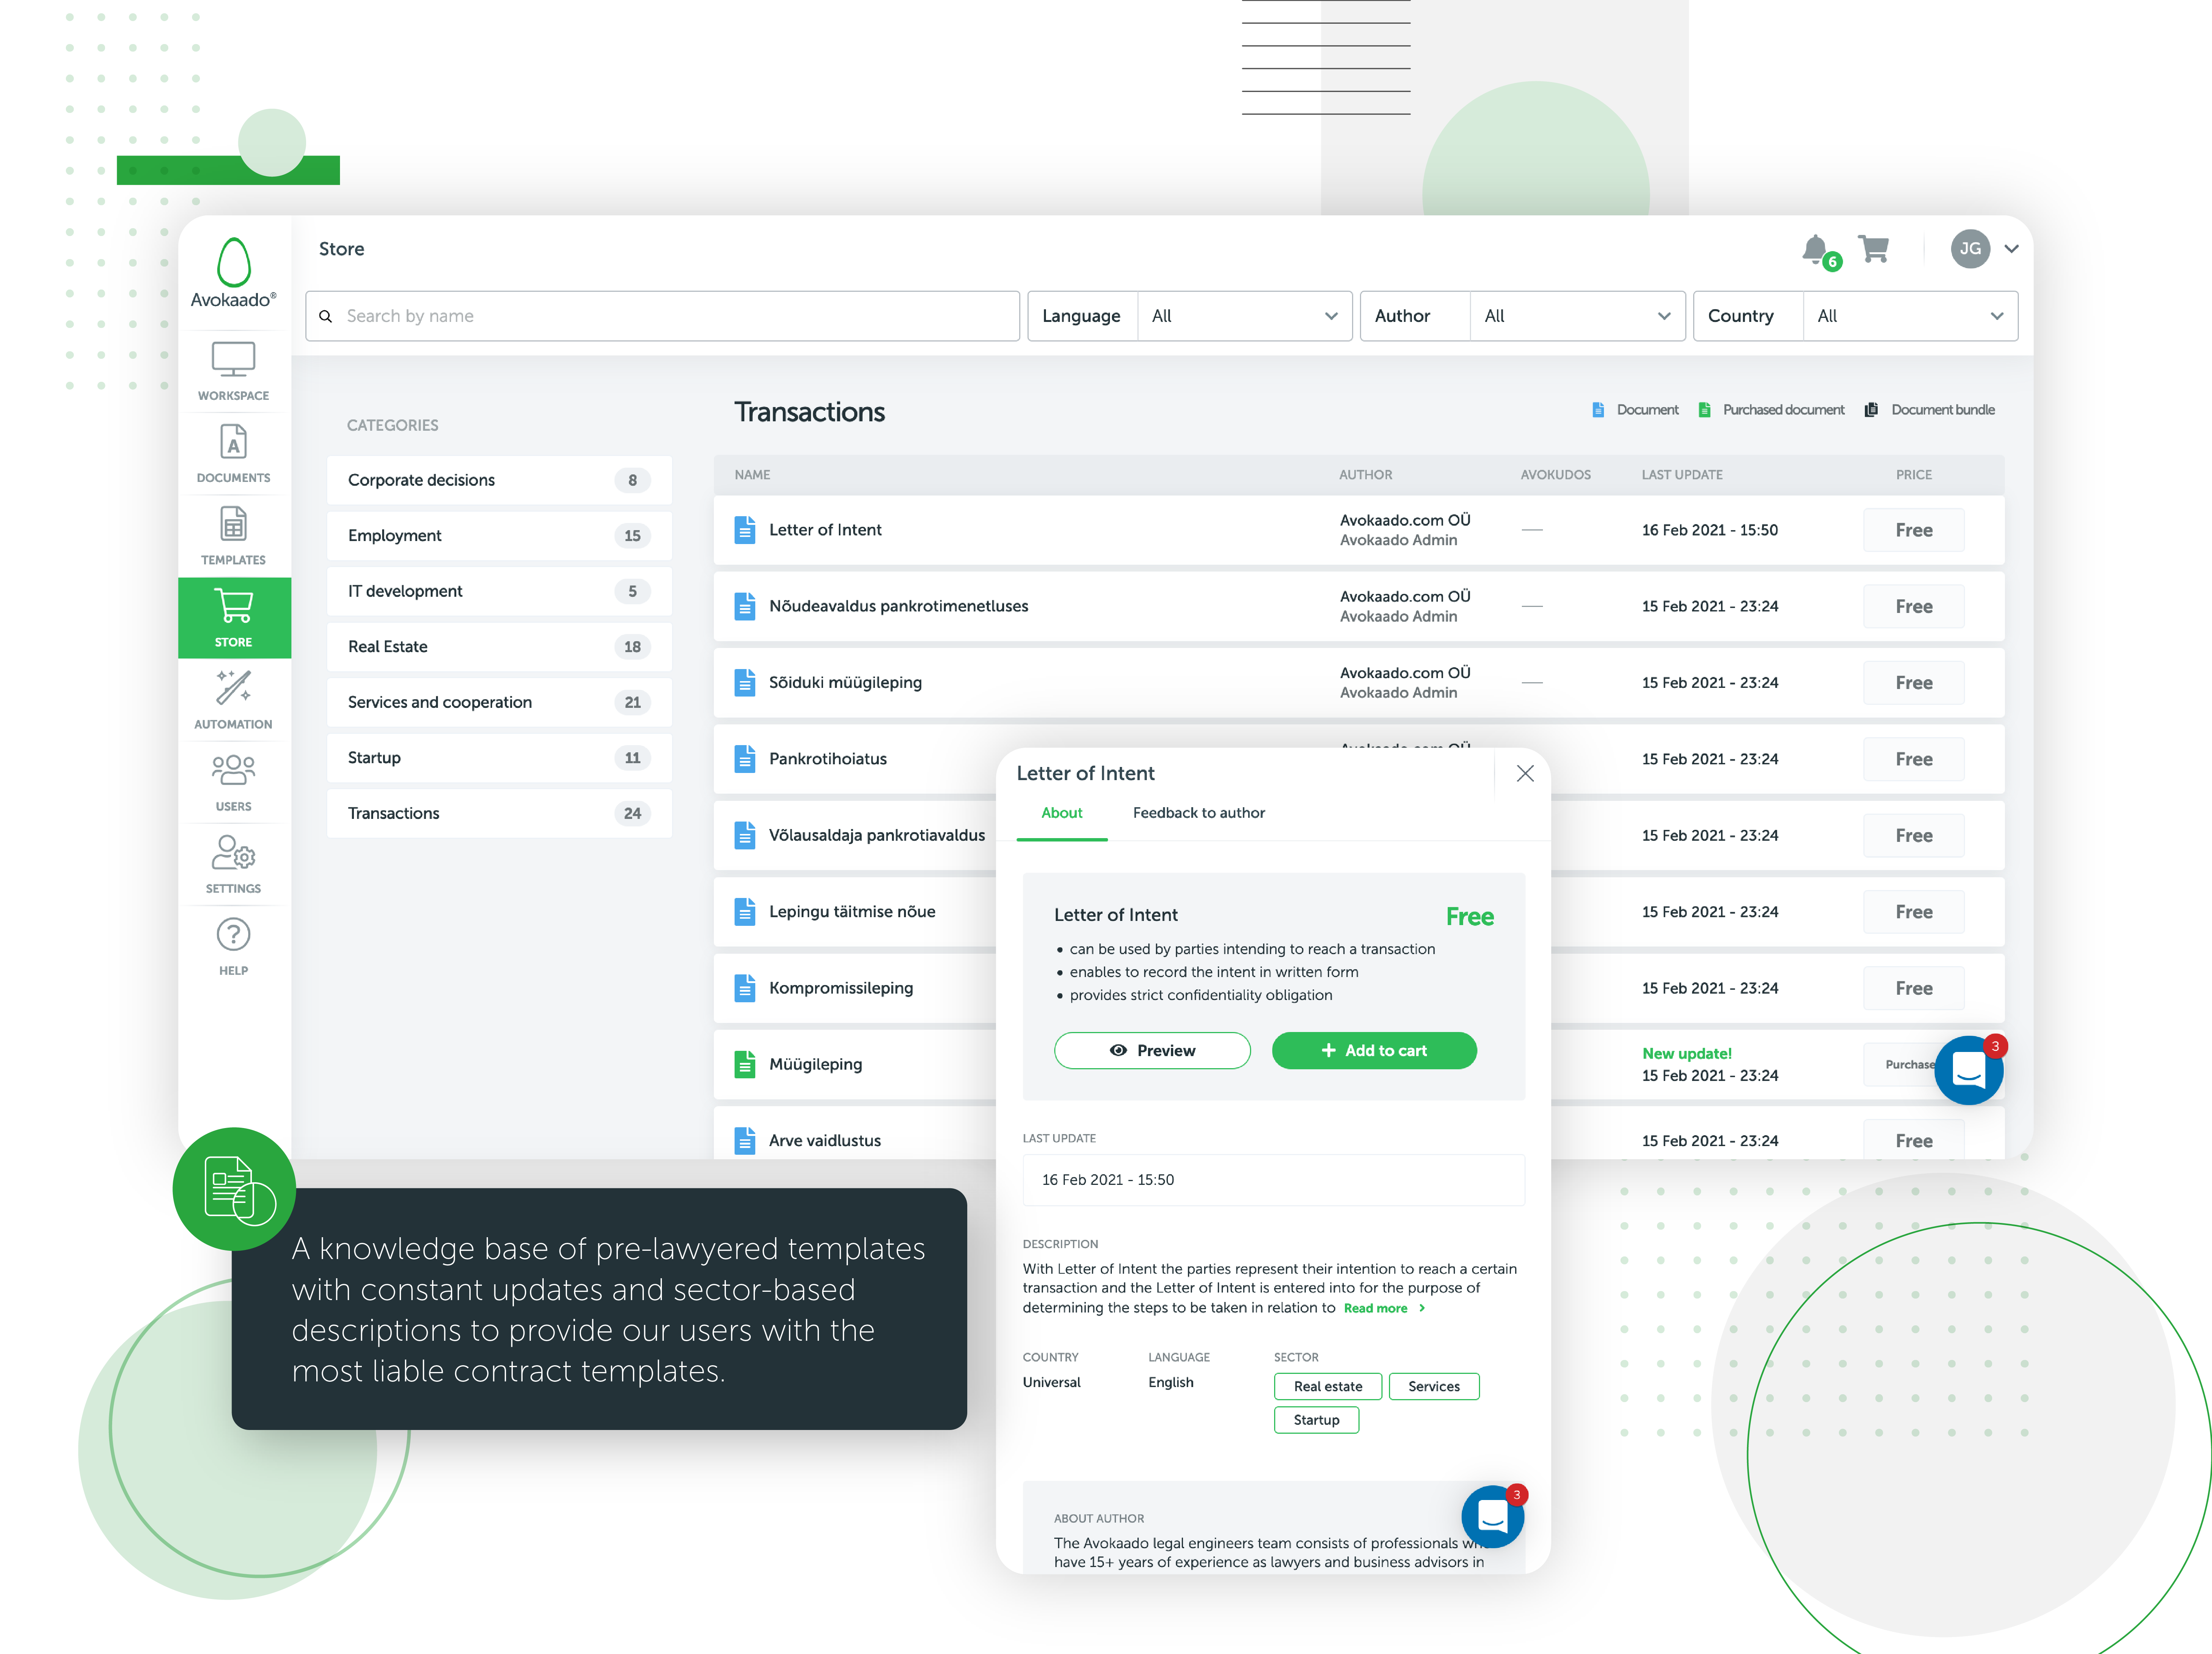 Avokaado template store - the ever-growing knowledge base for pre-lawyered templates.